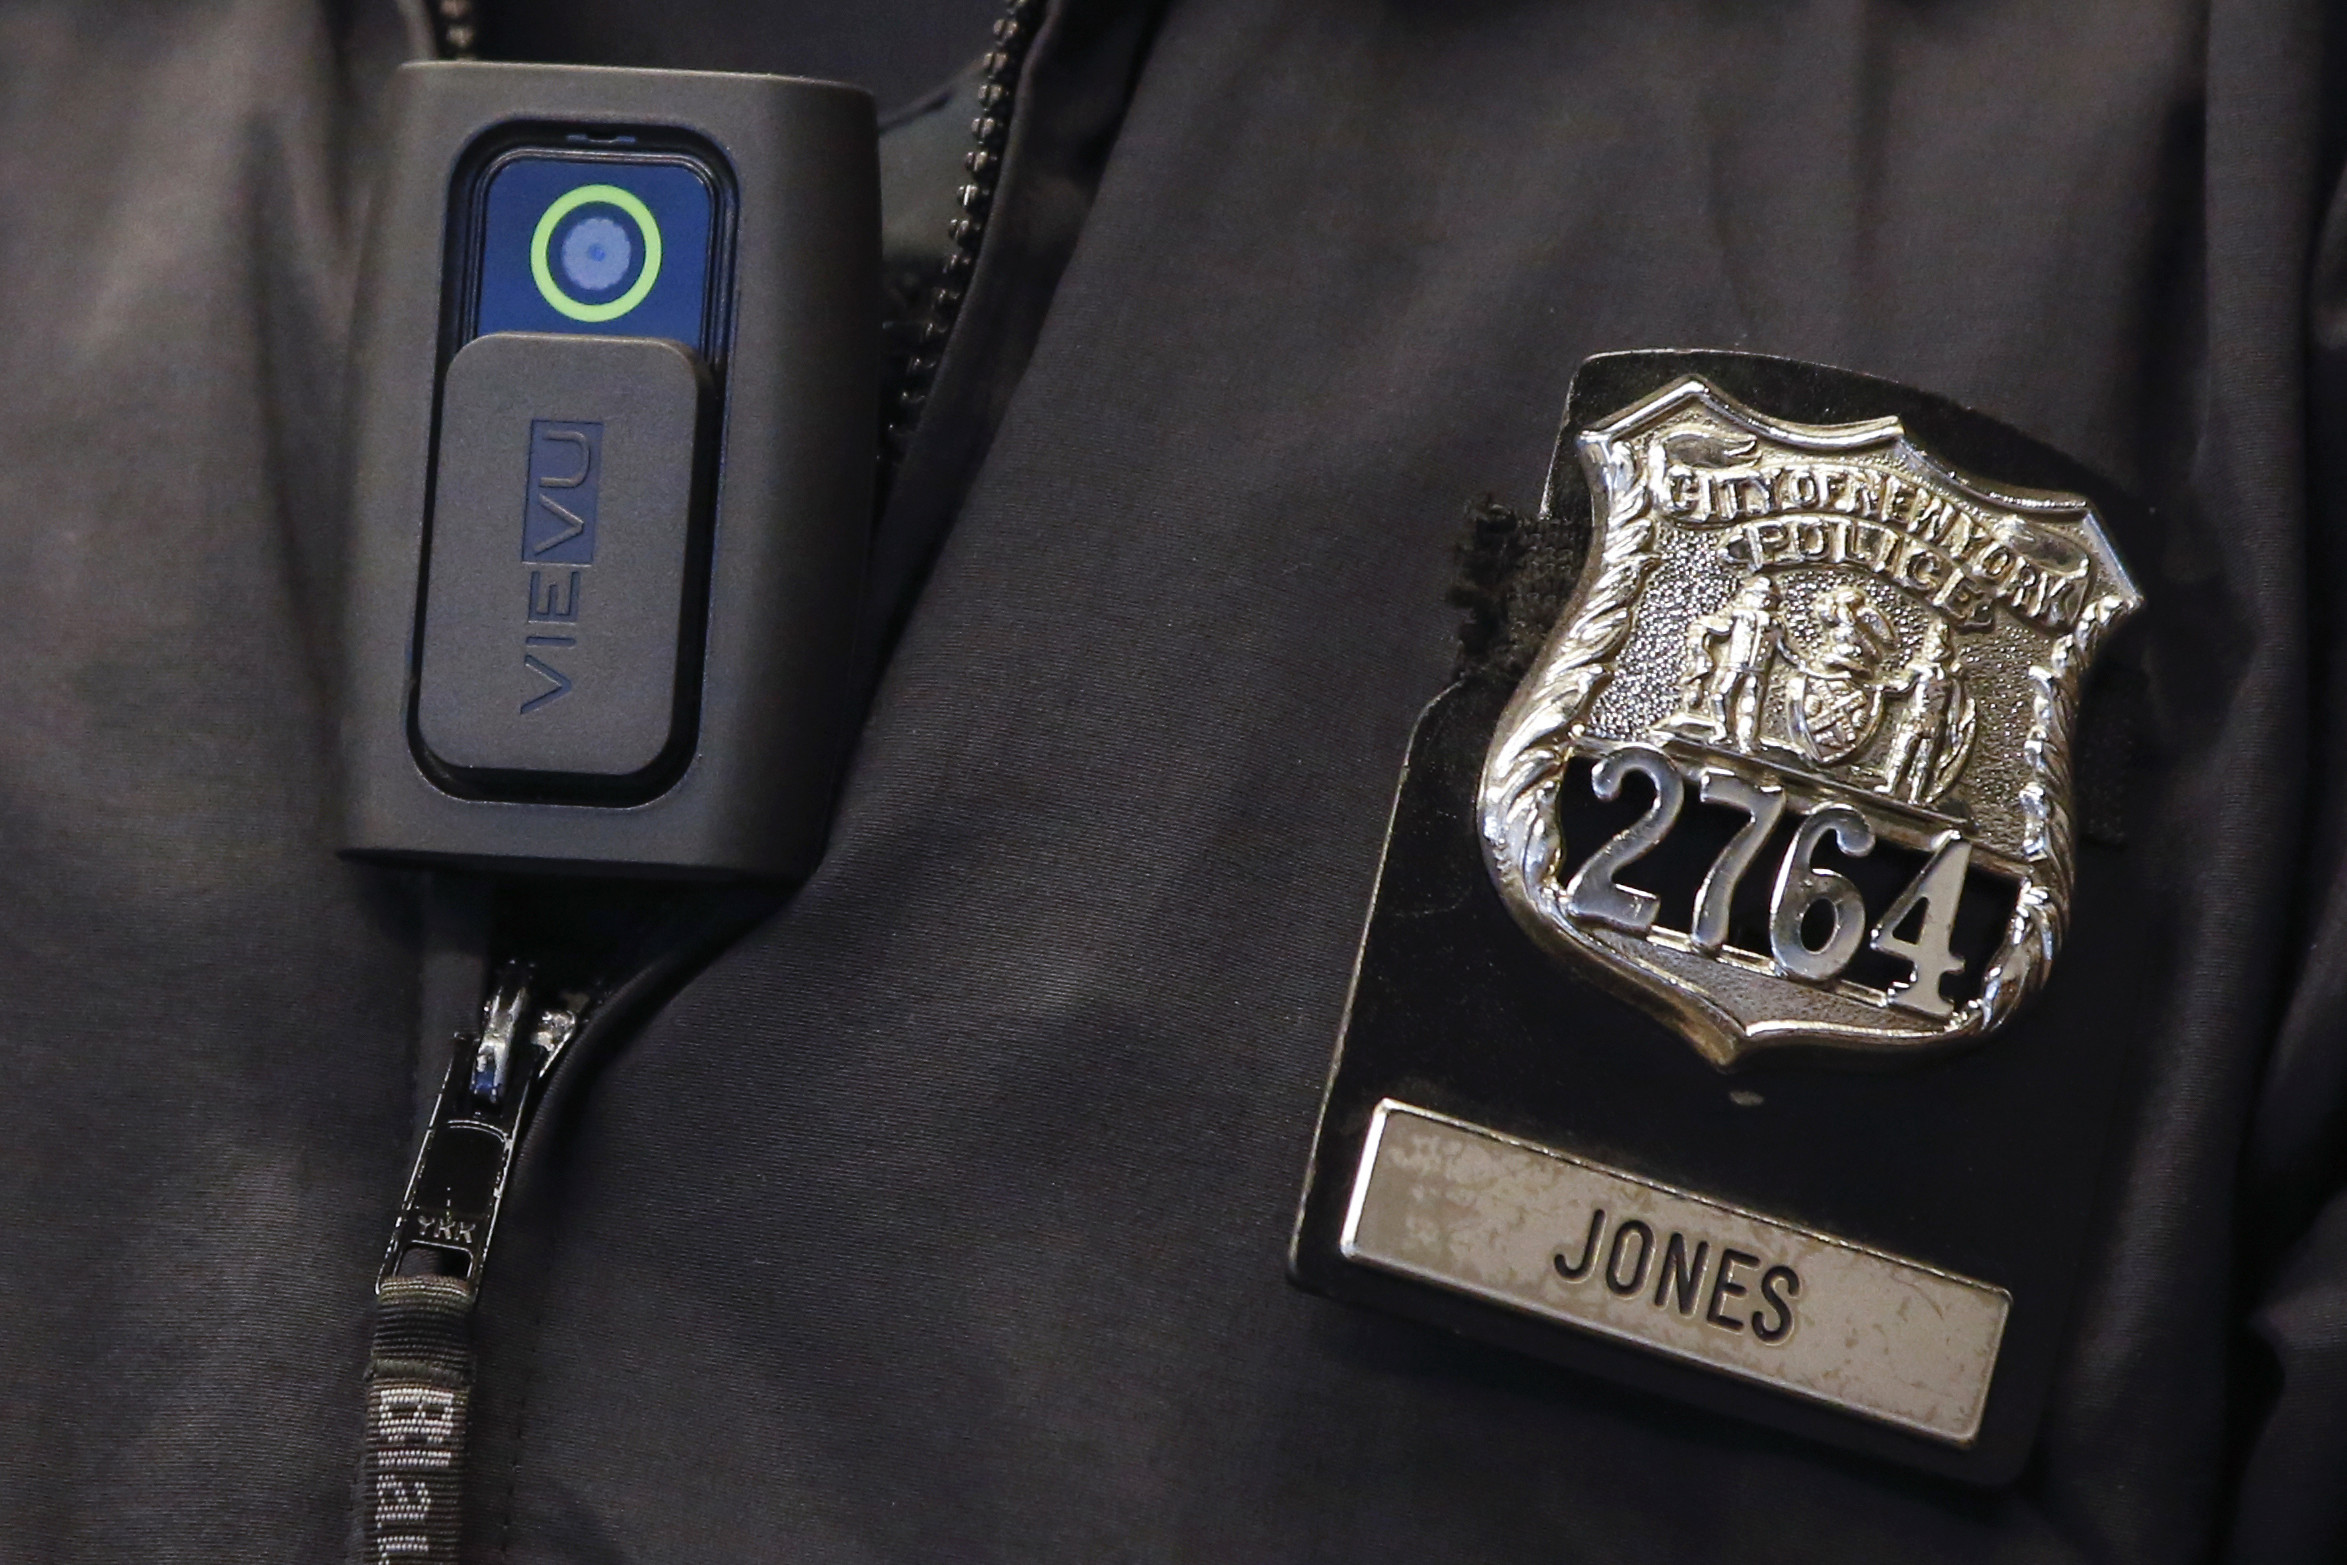 A police body camera is seen on an officer during a news conference on the pilot program involving 60 NYPD officers dubbed 'Big Brother' at the NYPD police academy in the Queens borough of New York, December 3, 2014.  REUTERS/Shannon Stapleton (UNITED STATES - Tags: CIVIL UNREST CRIME LAW SCIENCE TECHNOLOGY) - GM1EAC4054101